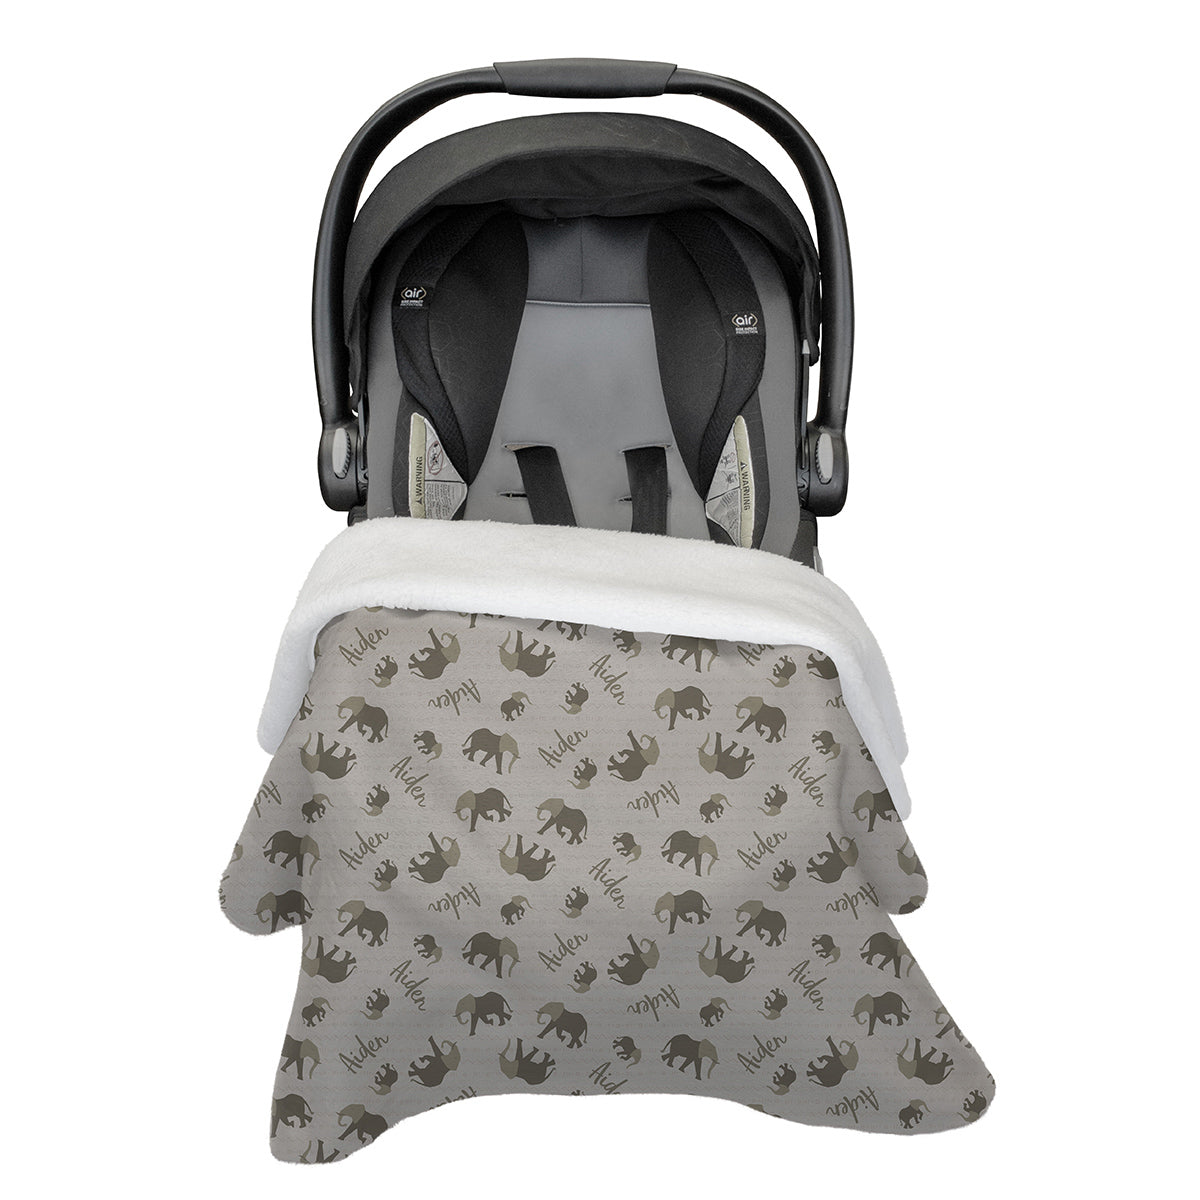 Obasi's Elephant Expedition | Car Seat Blanket